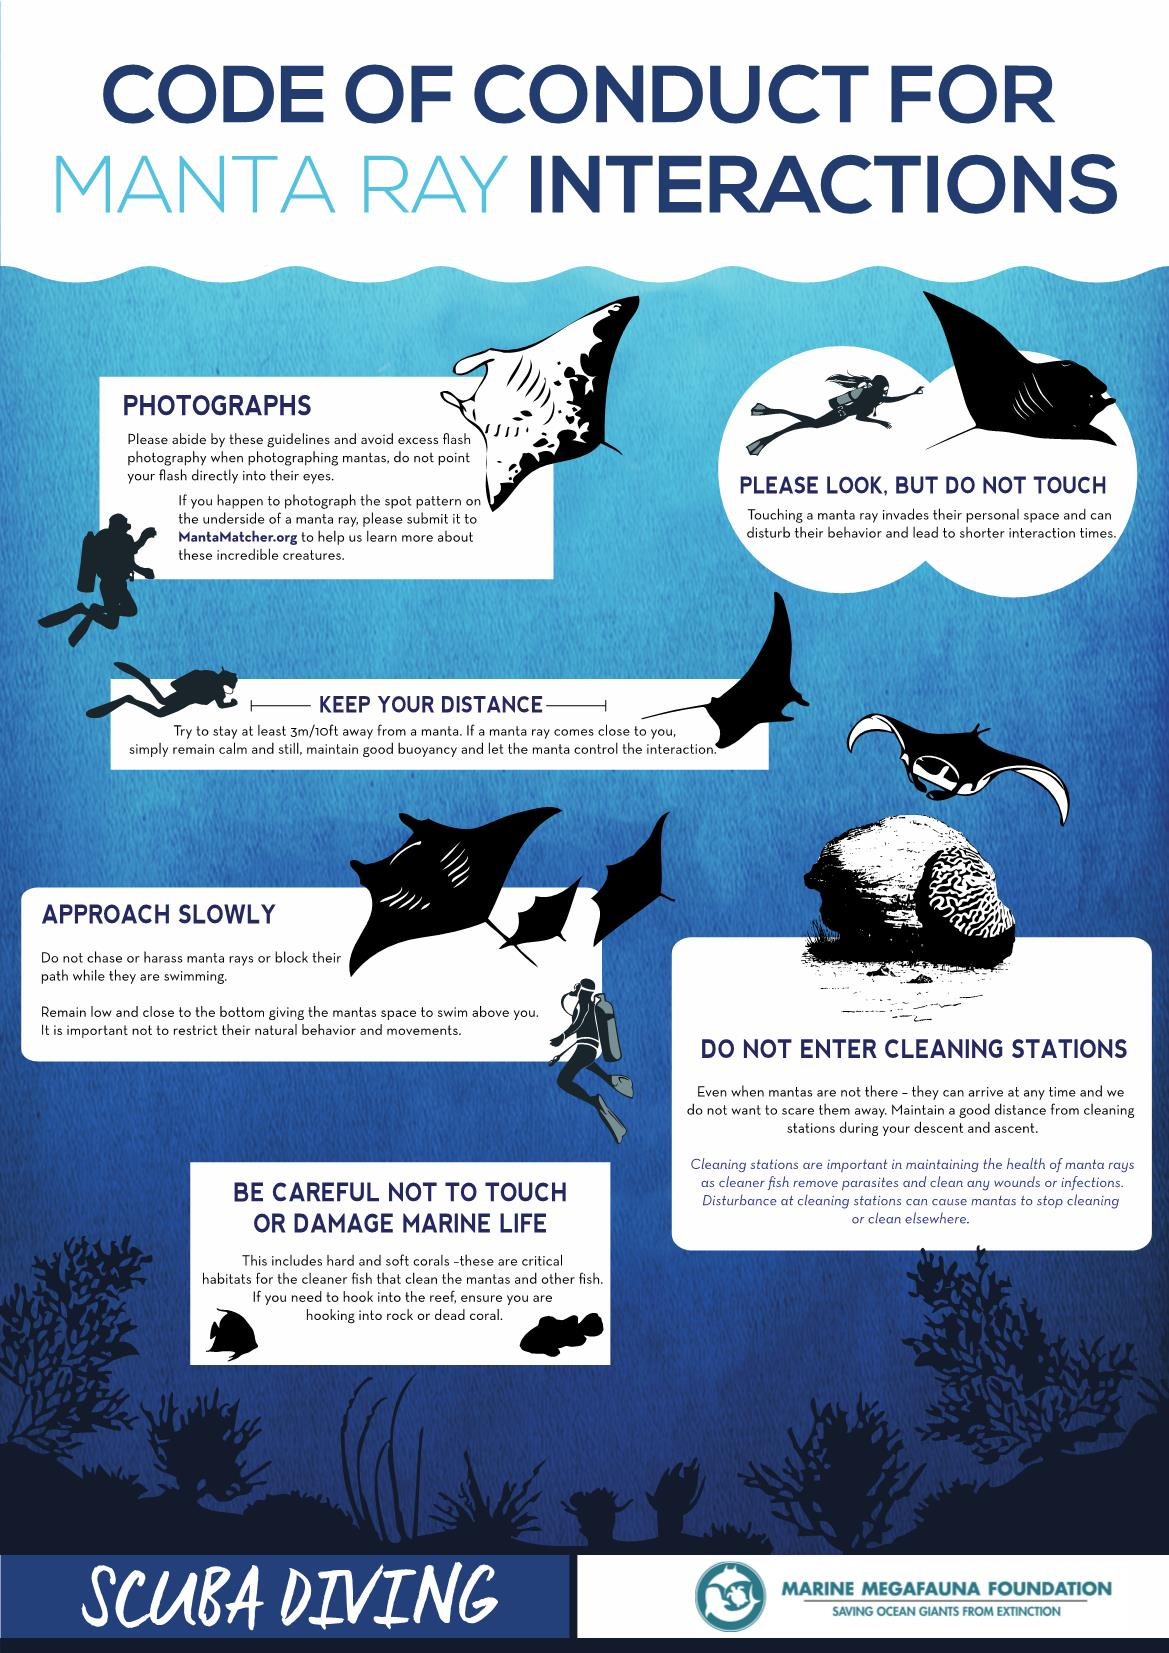 graphic showing the rules for interaction with manta rays in raja ampat